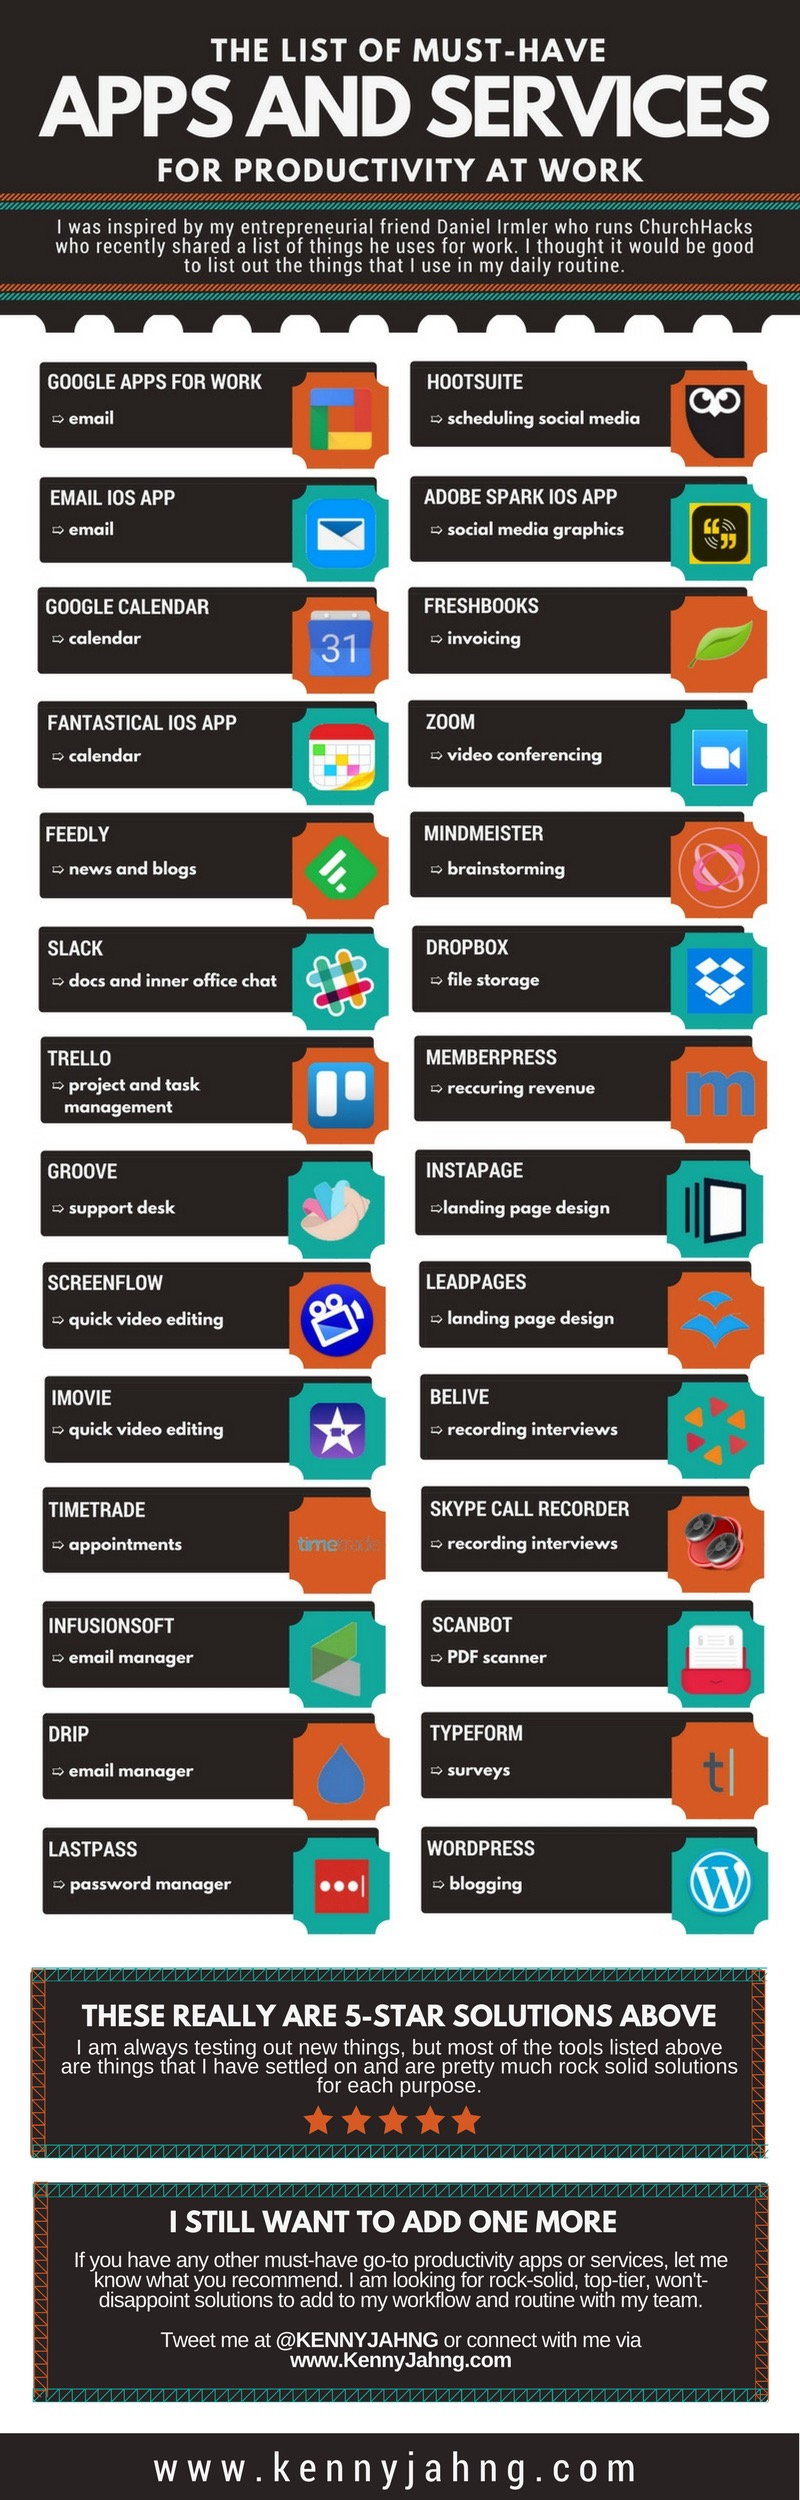 Work productivity apps list infographic